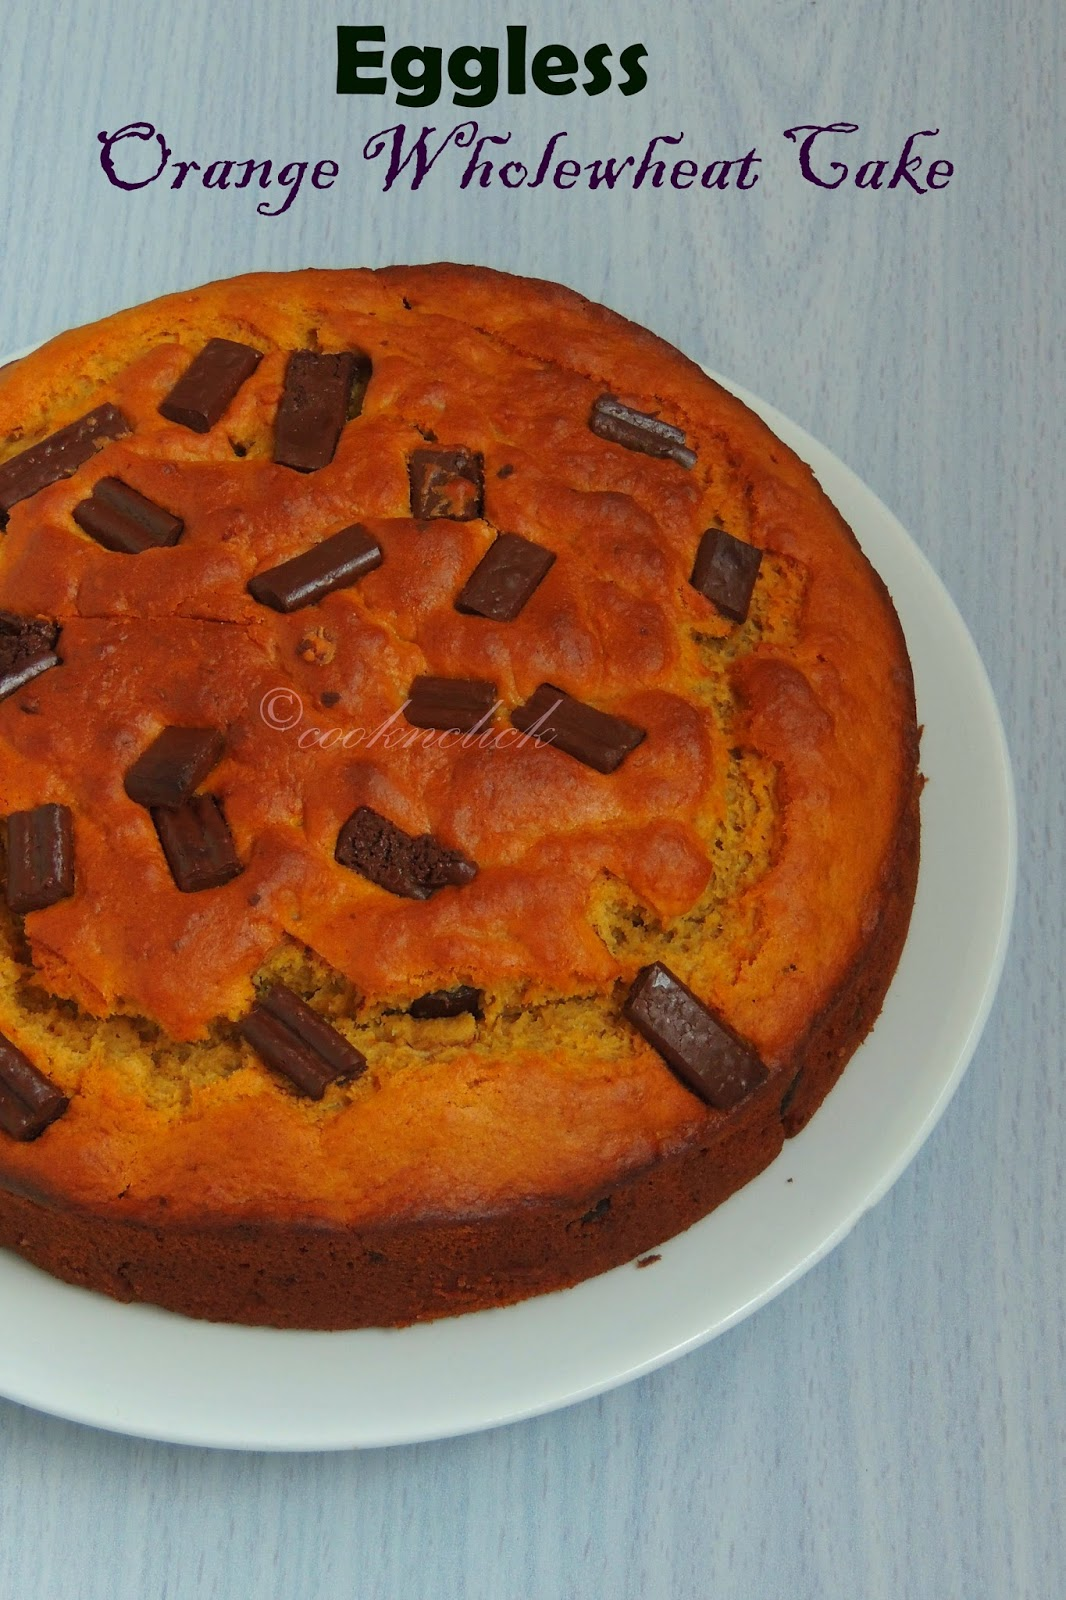 Orange wholewheat cake, eggless orange wholewheat cake